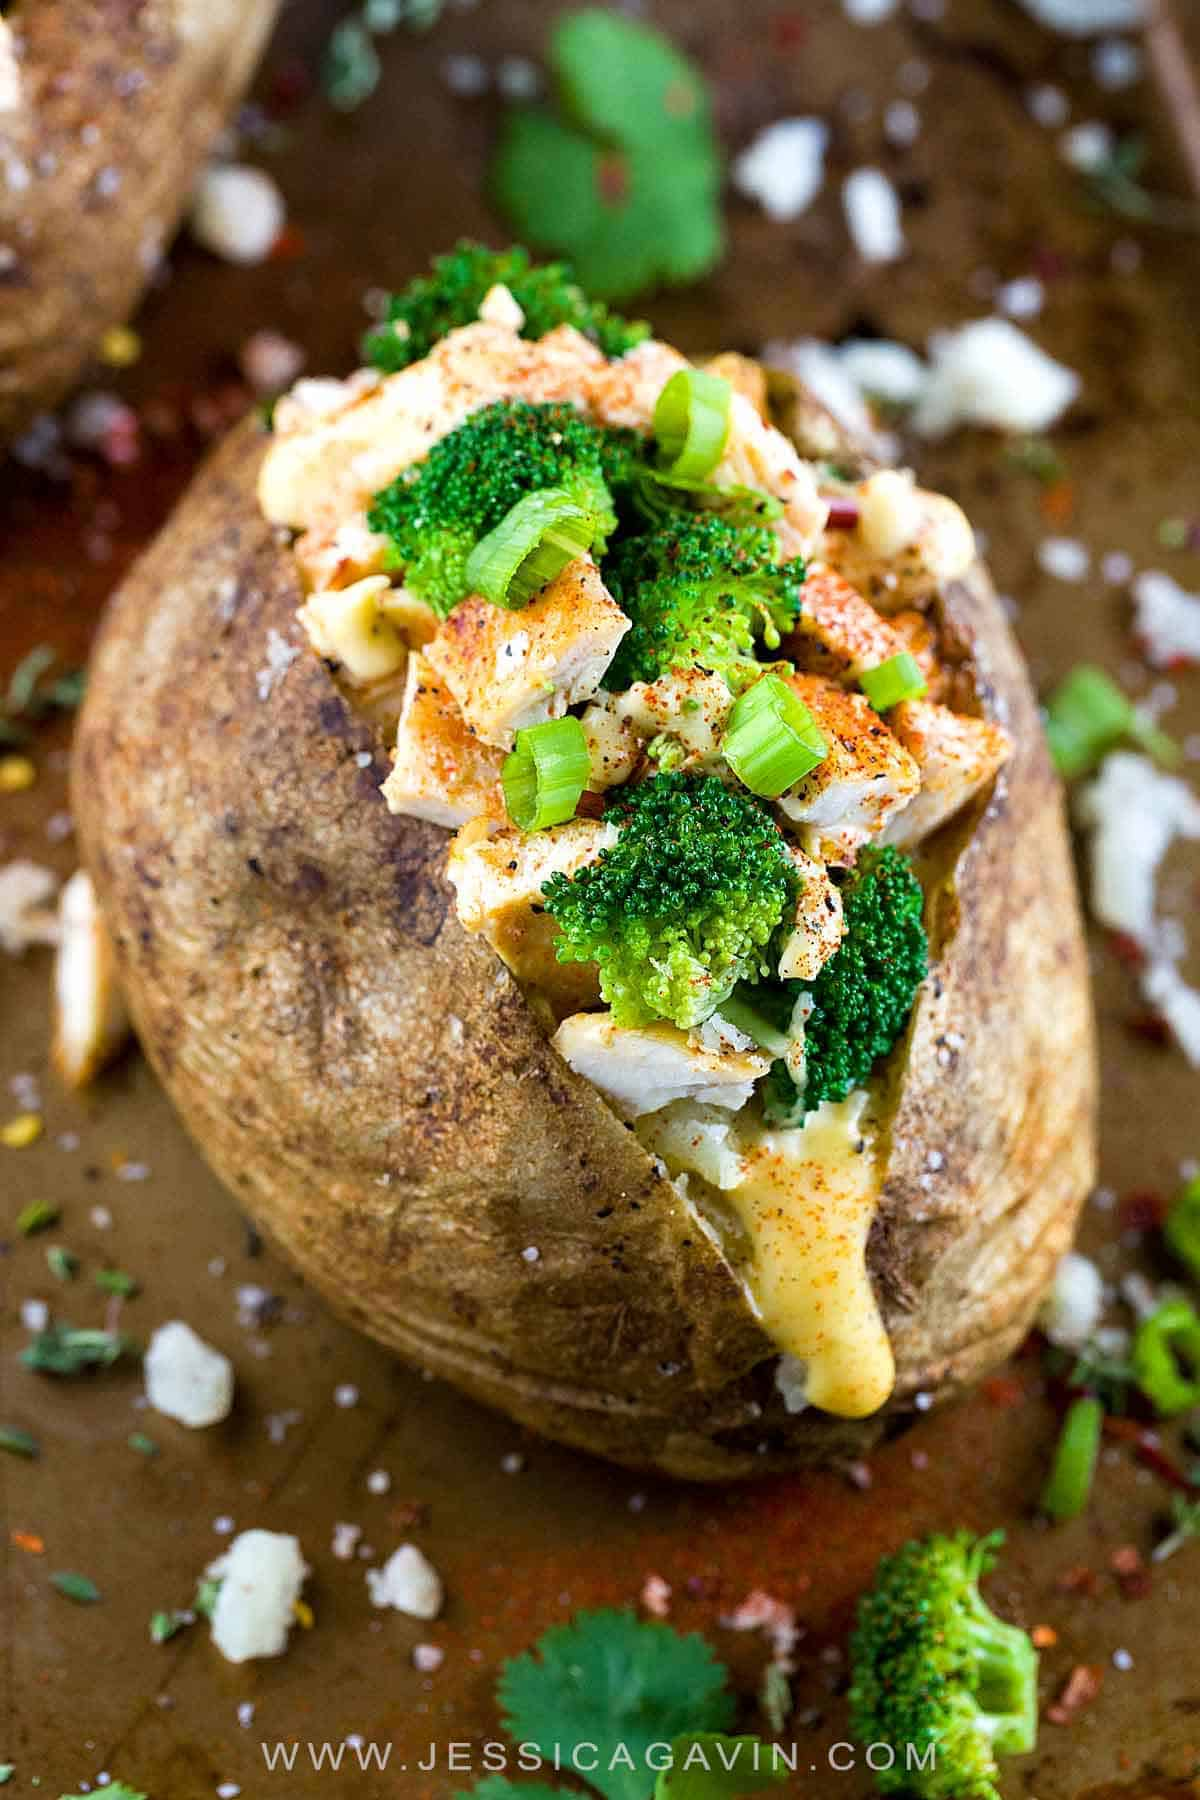 Stuffed Baked Potato With Chicken Jessica Gavin